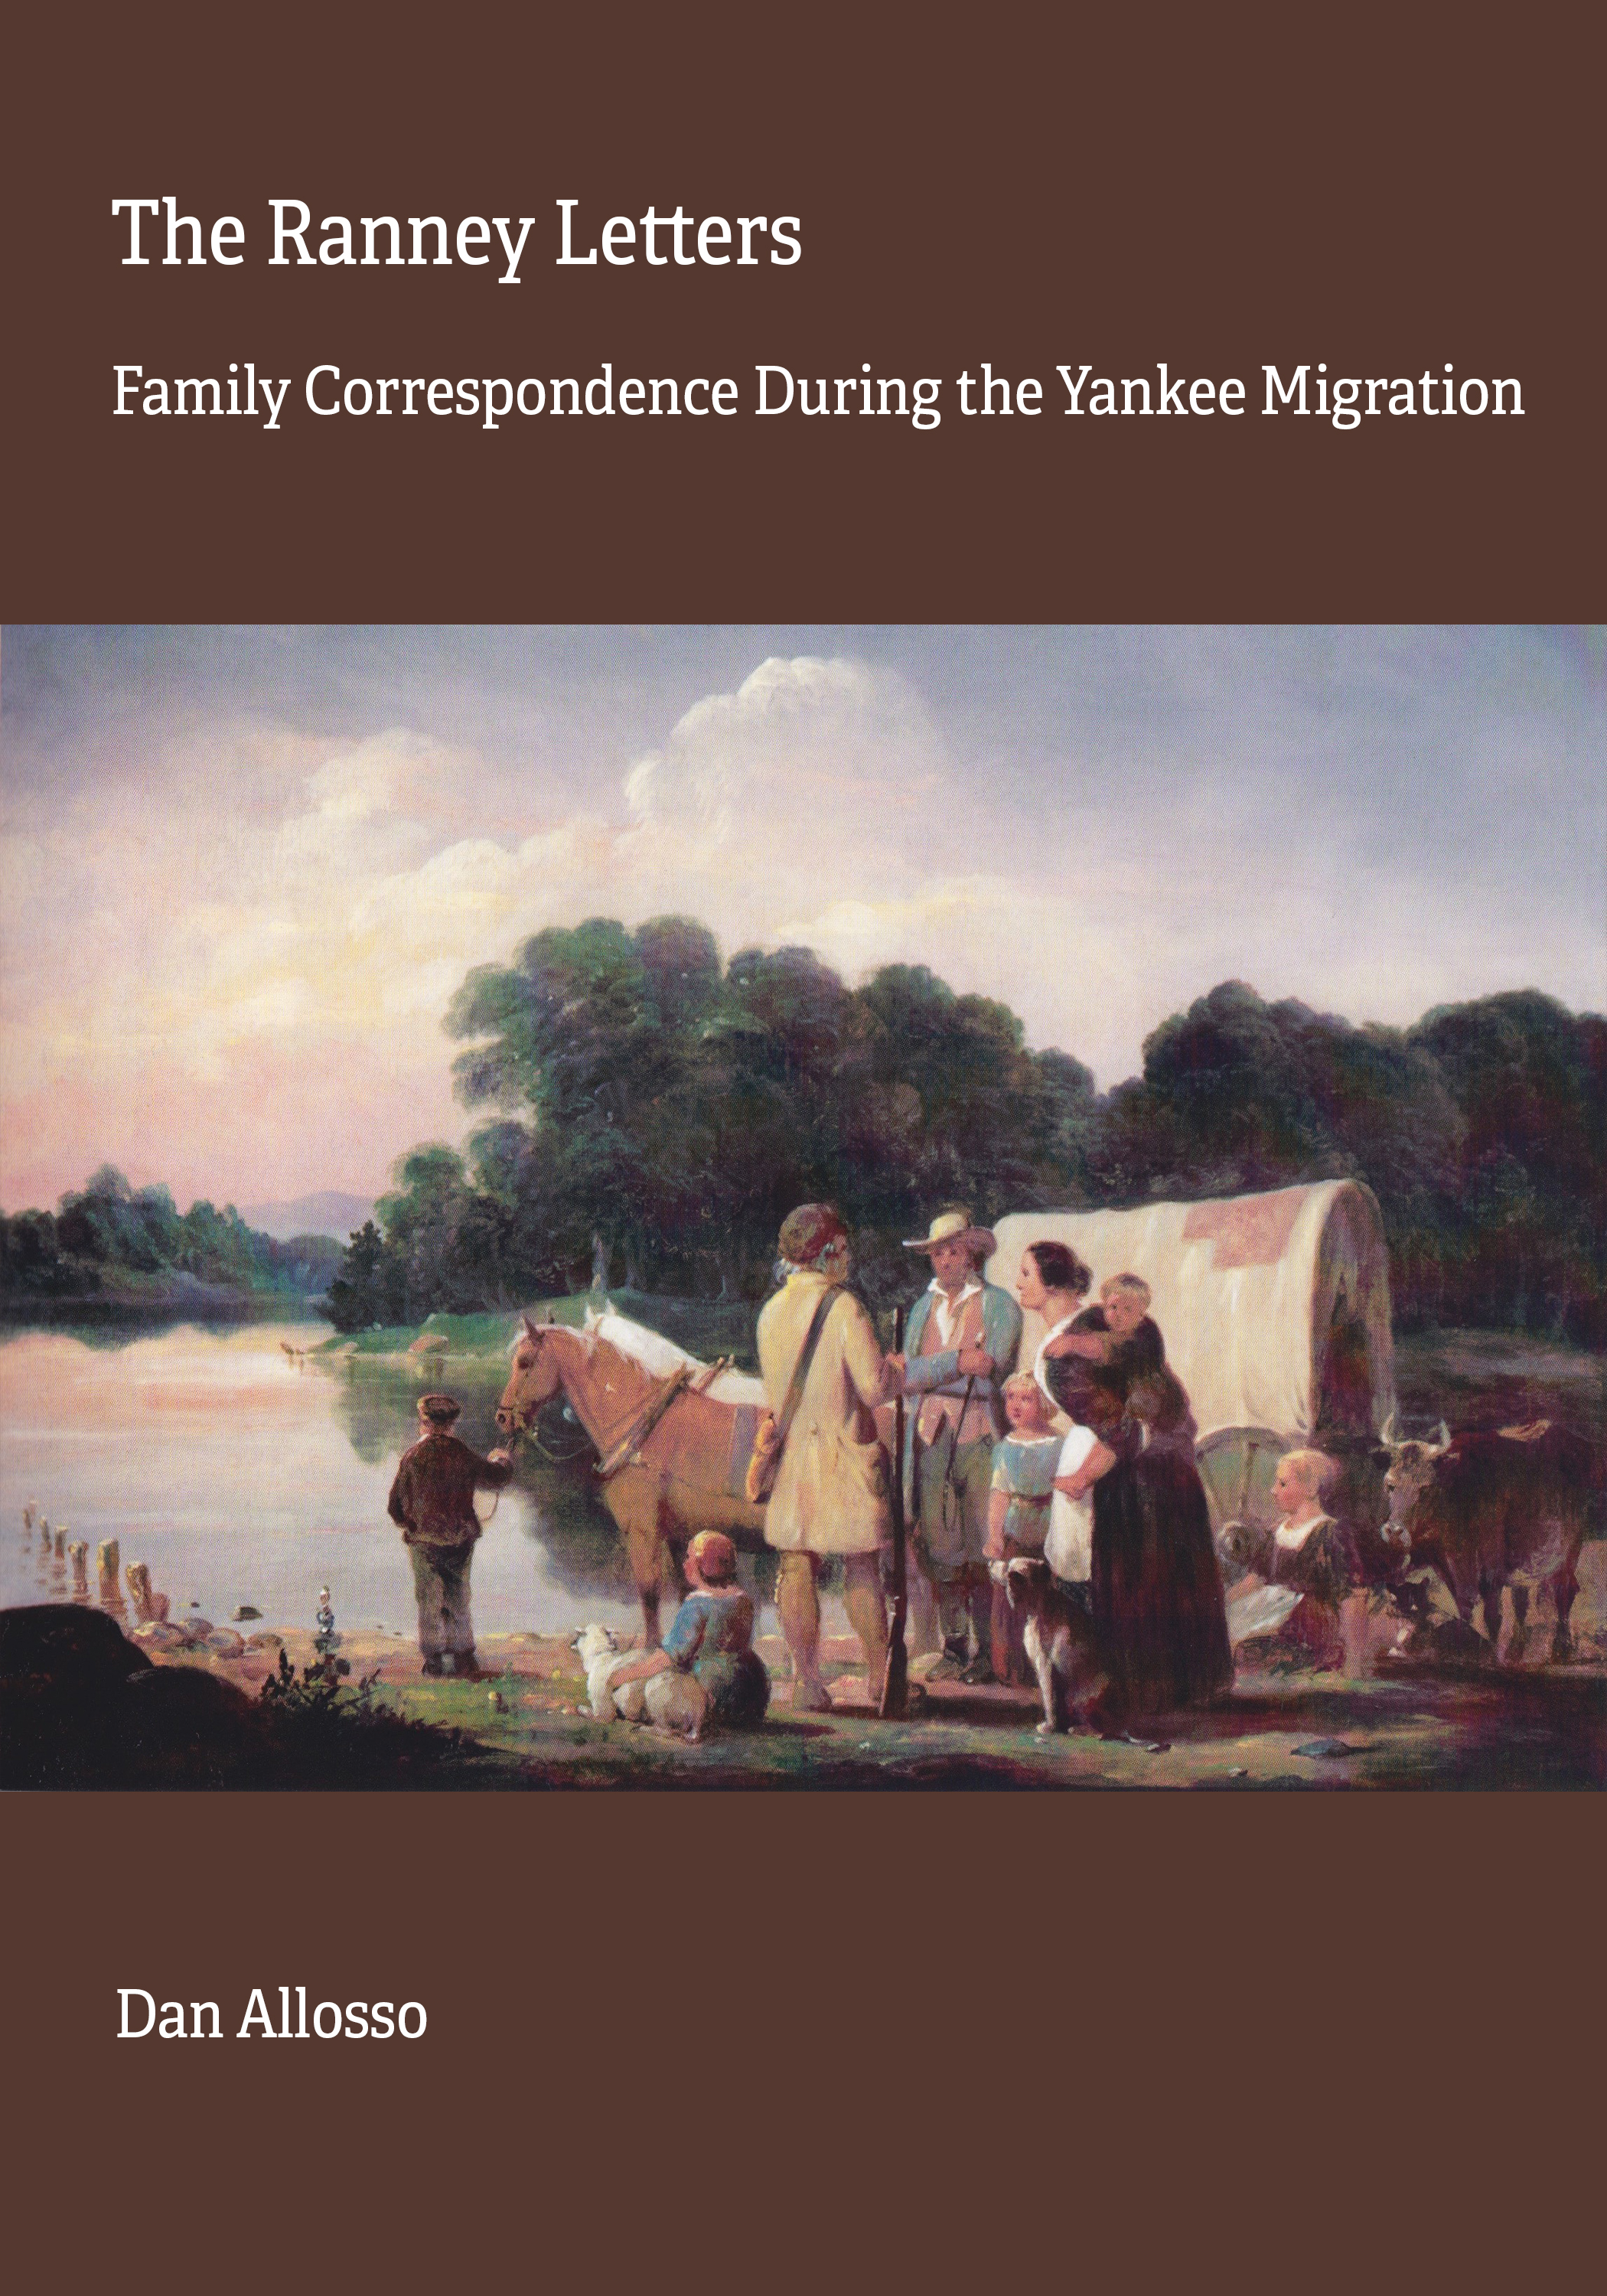 Cover image for The Ranney Letters: Family Correspondence During the Yankee Migration